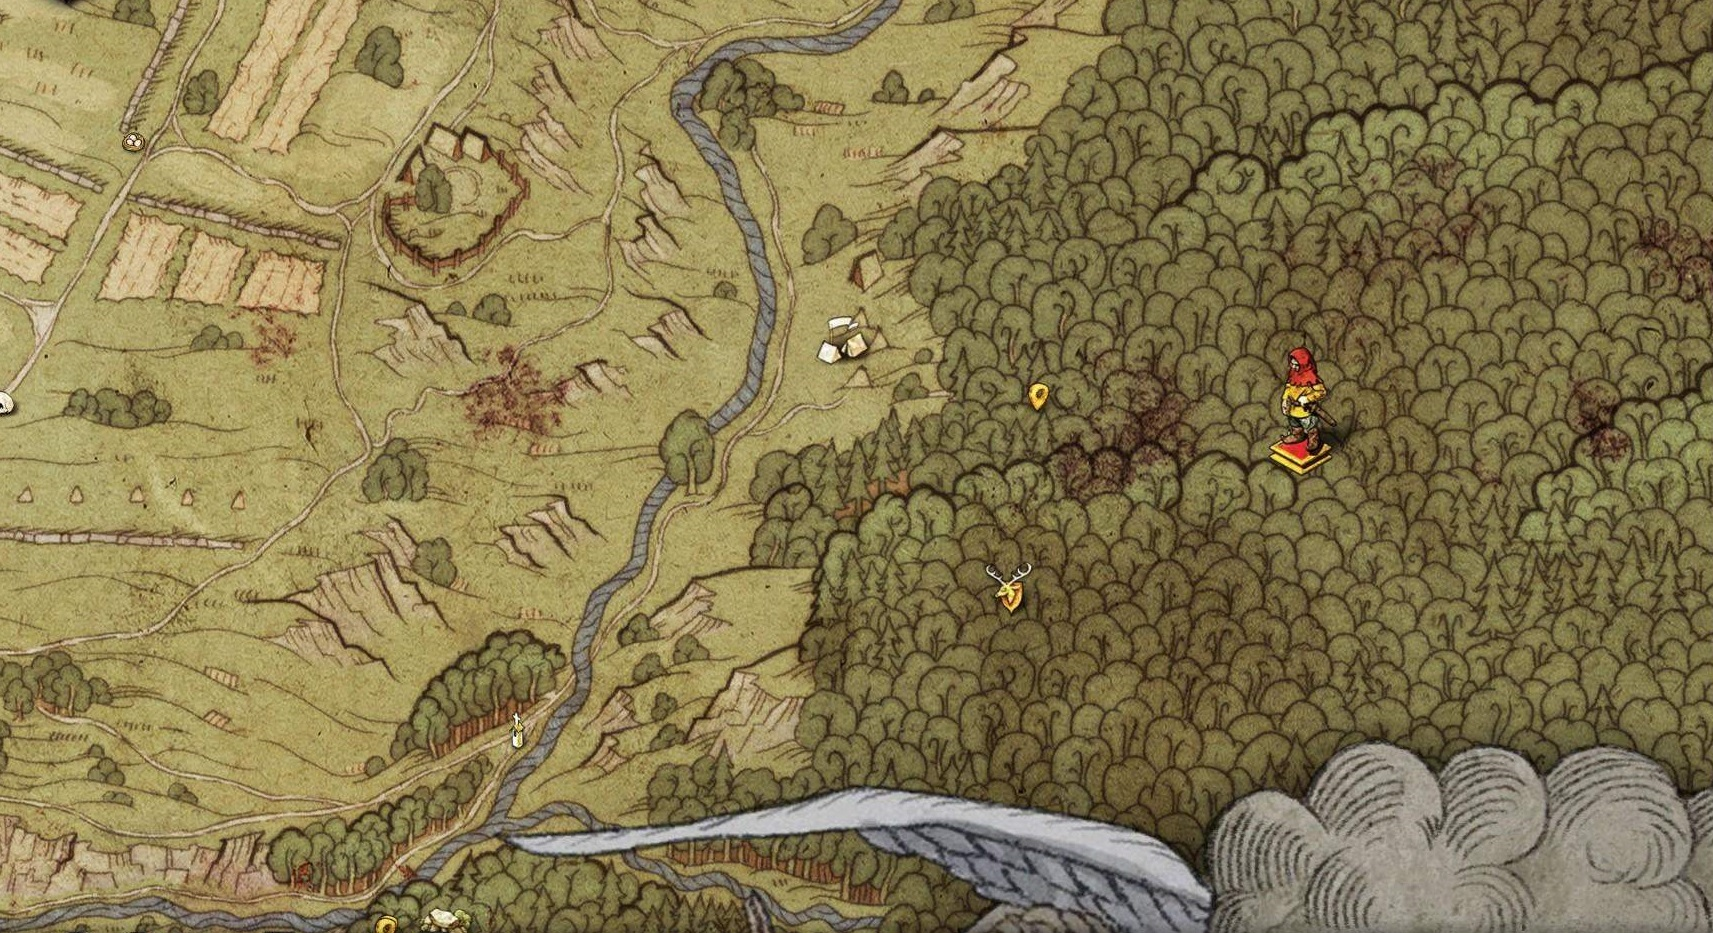 All 5 Ancient Map Loot Locations in Kingdom Come Deliverance